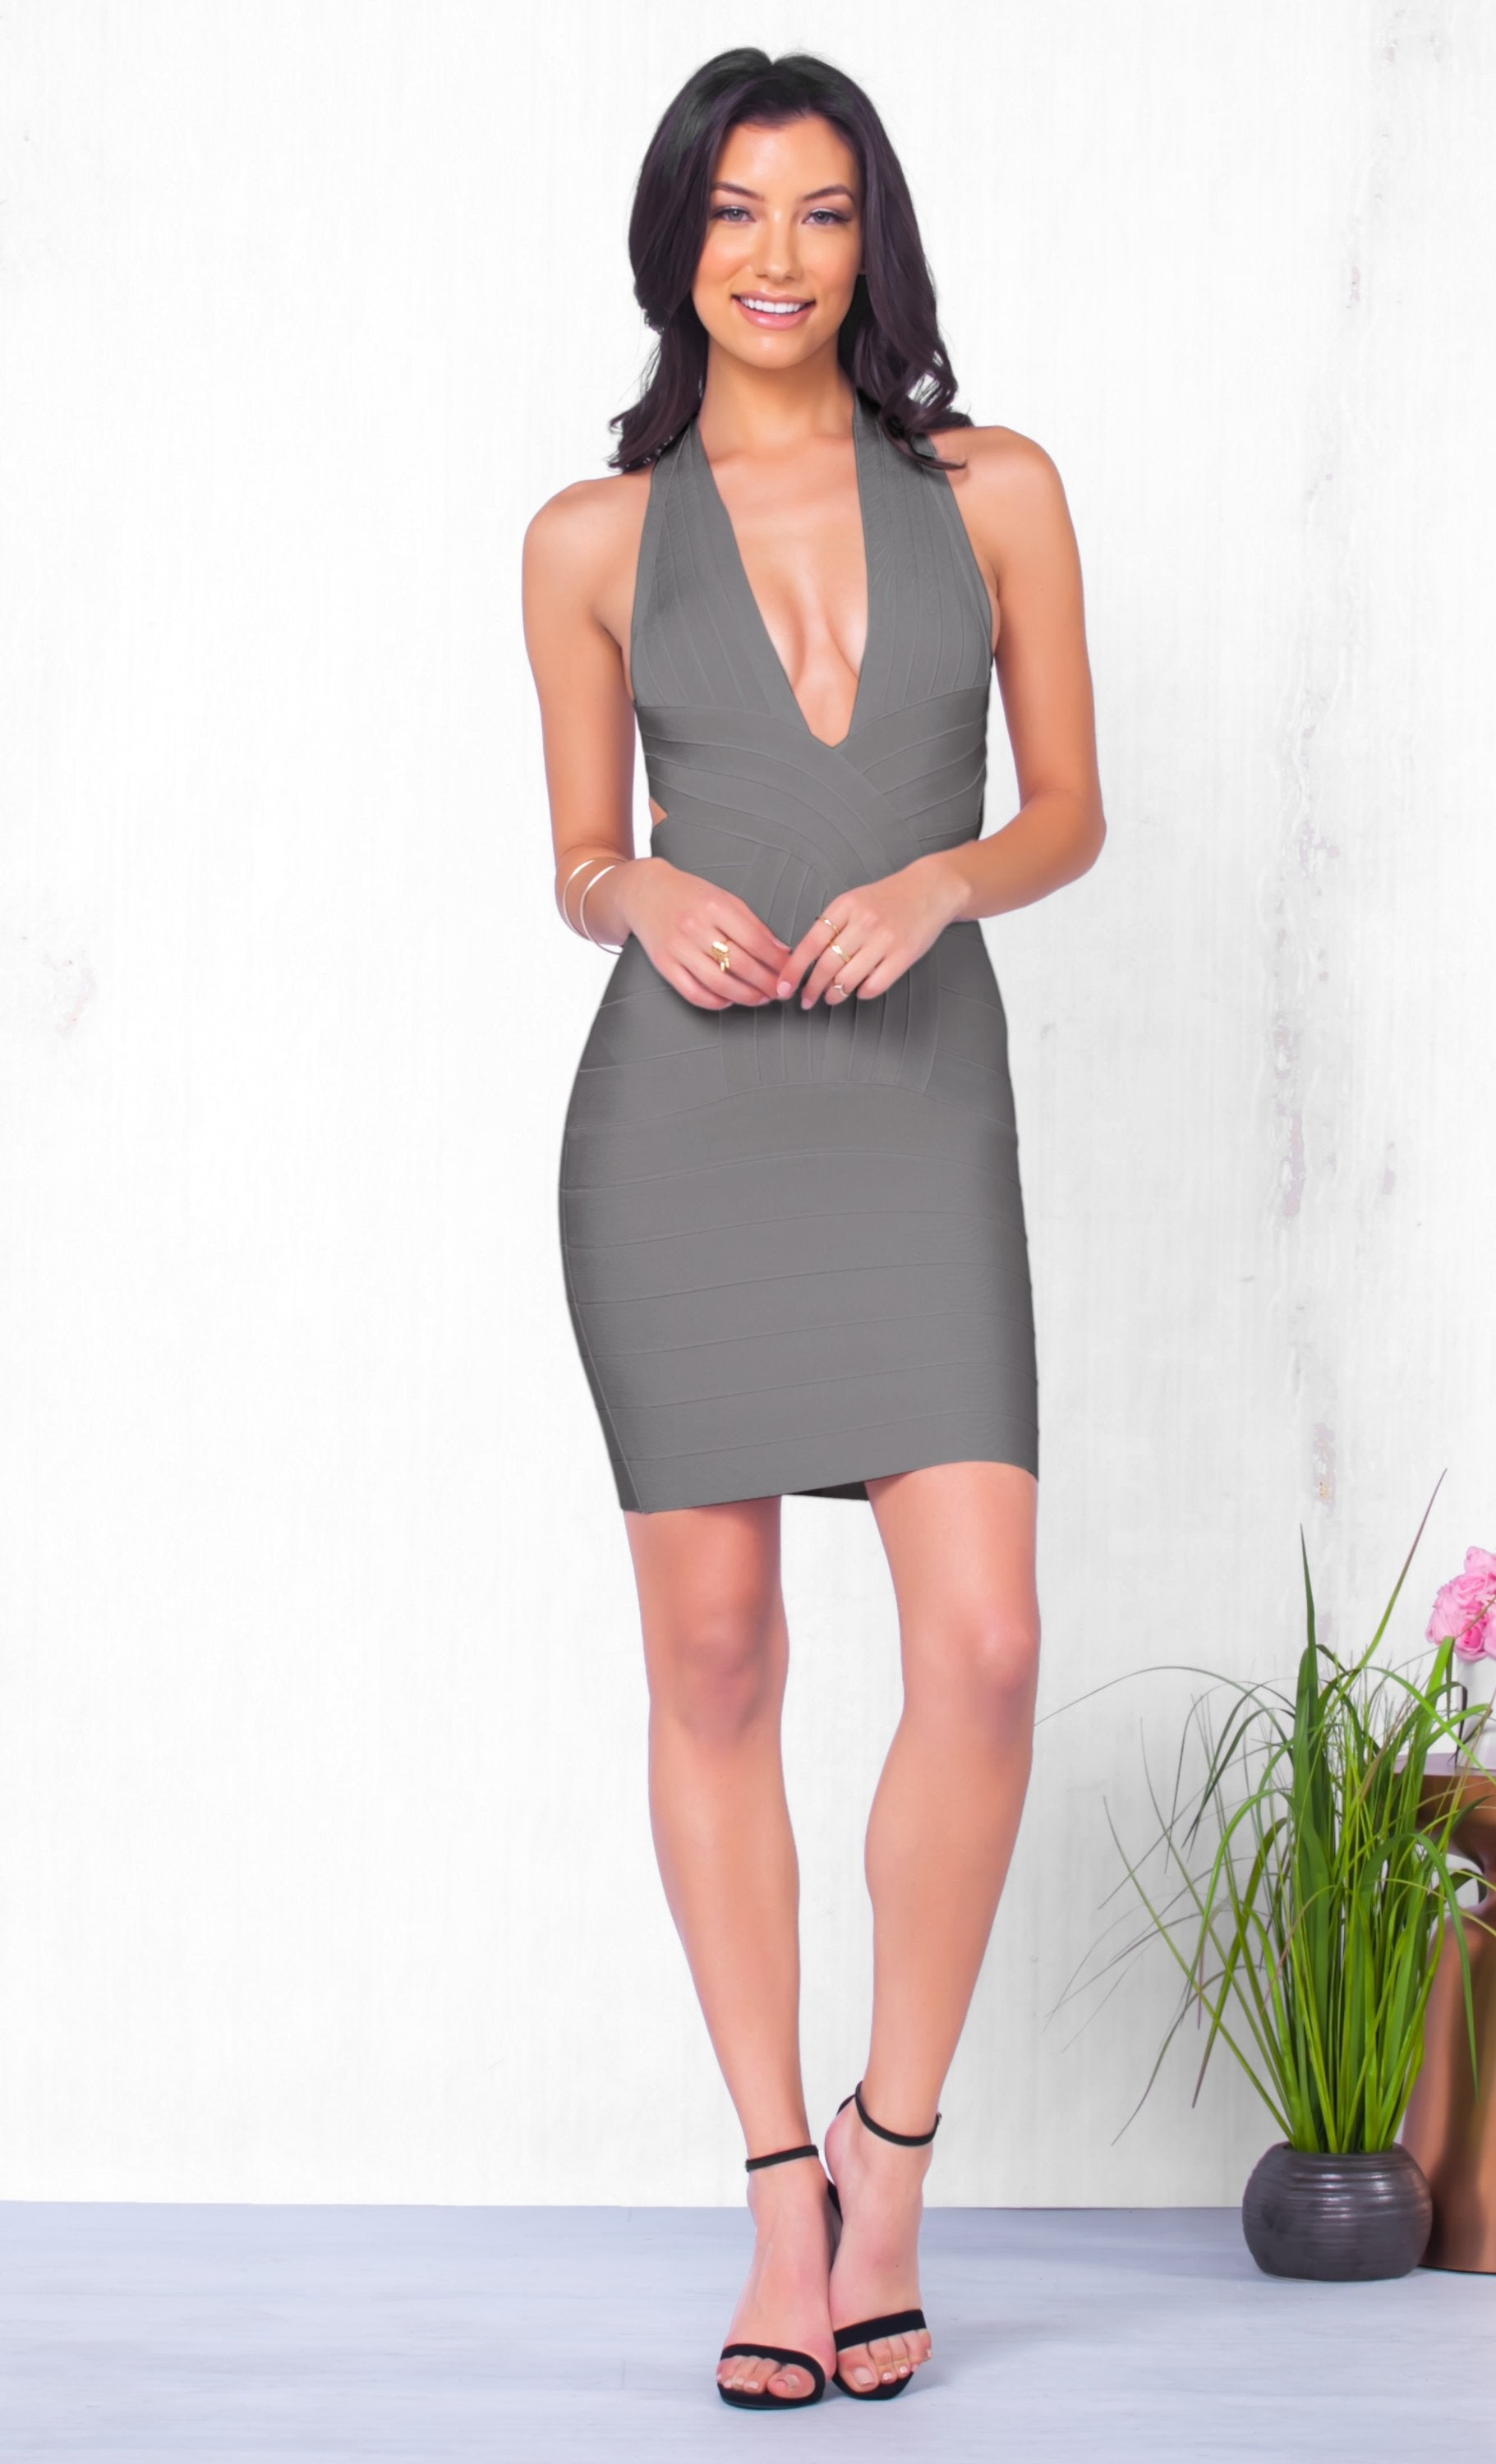 Indie XO She's A Catch Sleeveless Grey Plunging Deep V Neck Cross Back Body Con Bandage Fitted Mini Dress